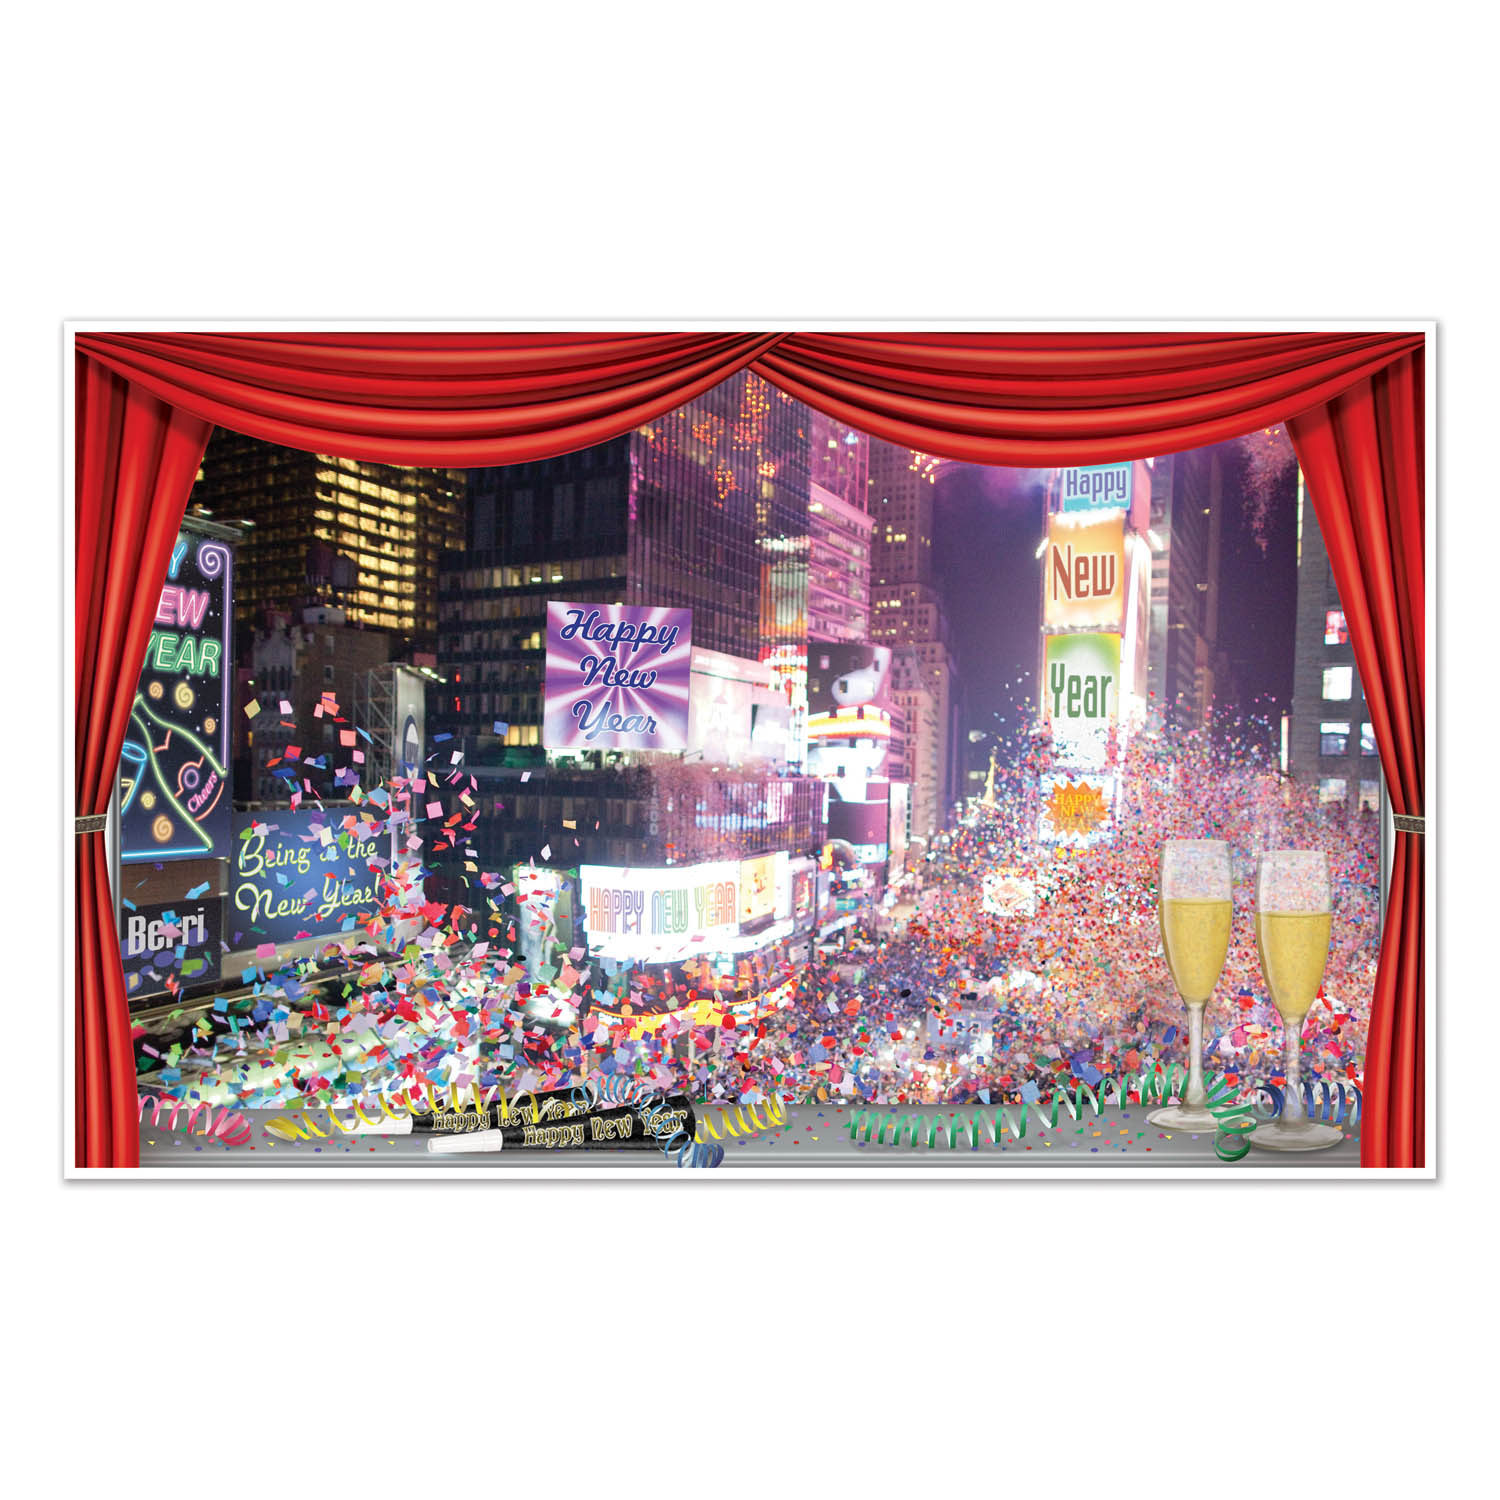 New Year Insta-View (Pack of 6) New Year, Insta-view, Backdrop, Background, Times Square, Inexpensive decor, Wholesale party supplies, NYE, New Years Eve, Bulk party favors, Hanging Decor, Ceiling decor, Balloons, Party goods, Cheap